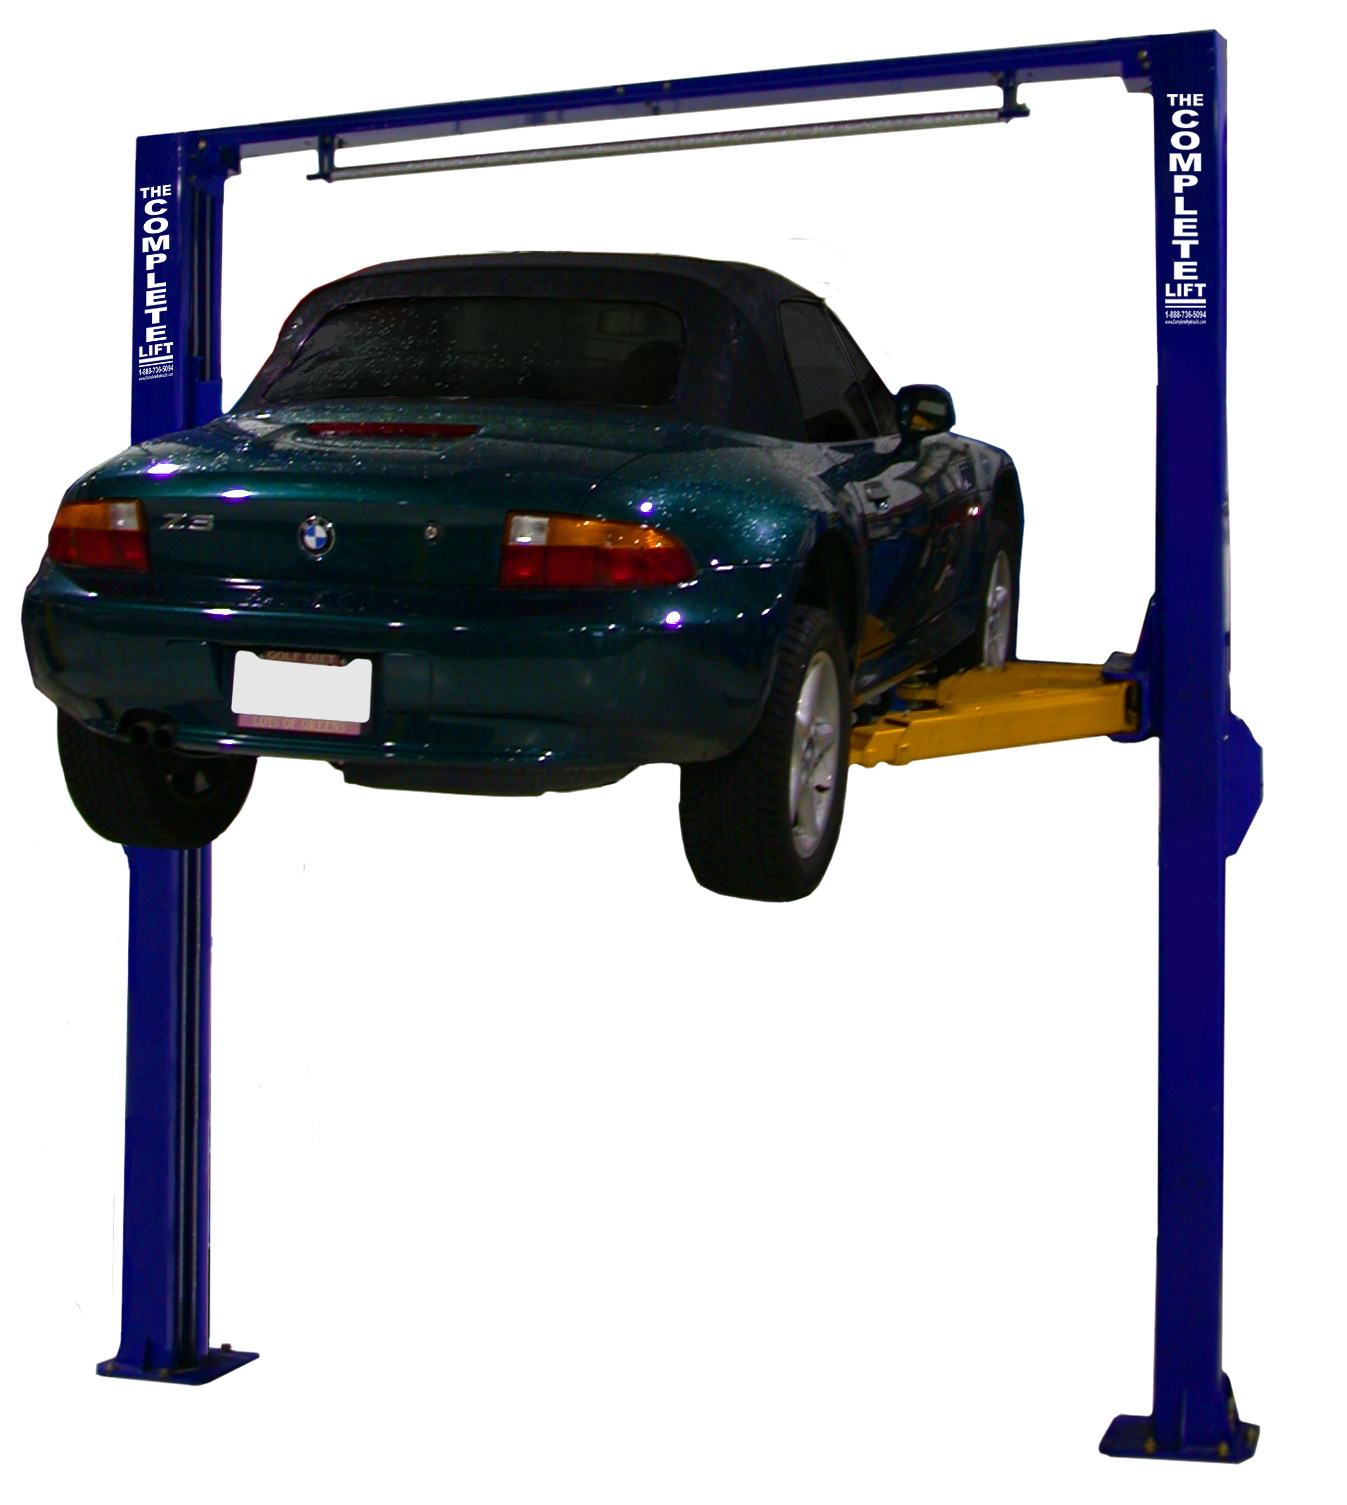 10000 Lb Car Lift >> Automotive Lifts, Hydraulic Lifts, Pneumatic Lifts, Motorcycle Lifts, 2 Post Lifts, 4 Post Lifts ...